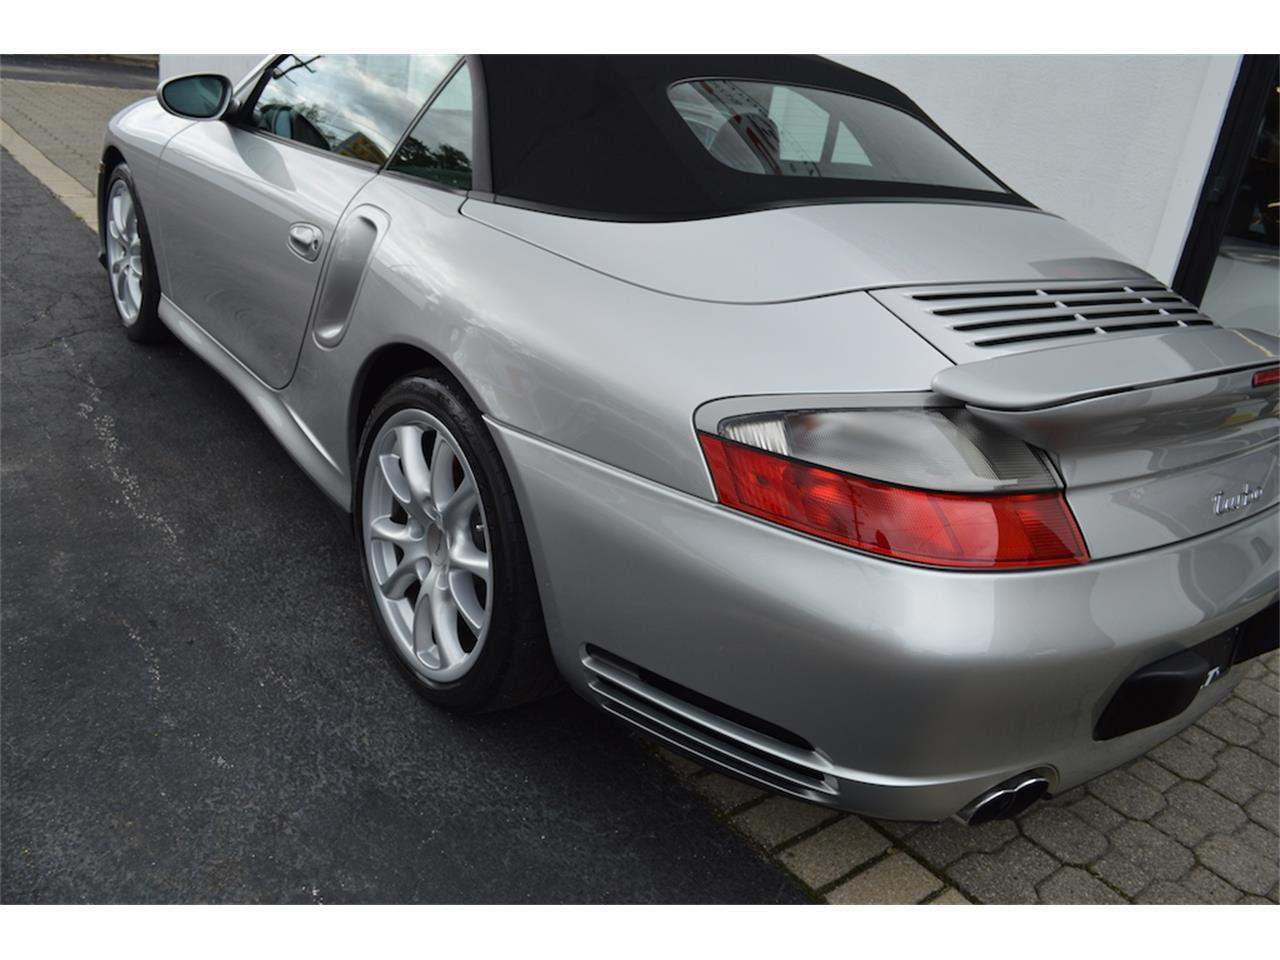 Large Picture of '04 996 Turbo Cabriolet - $46,500.00 Offered by Holt Motorsports - NQV0